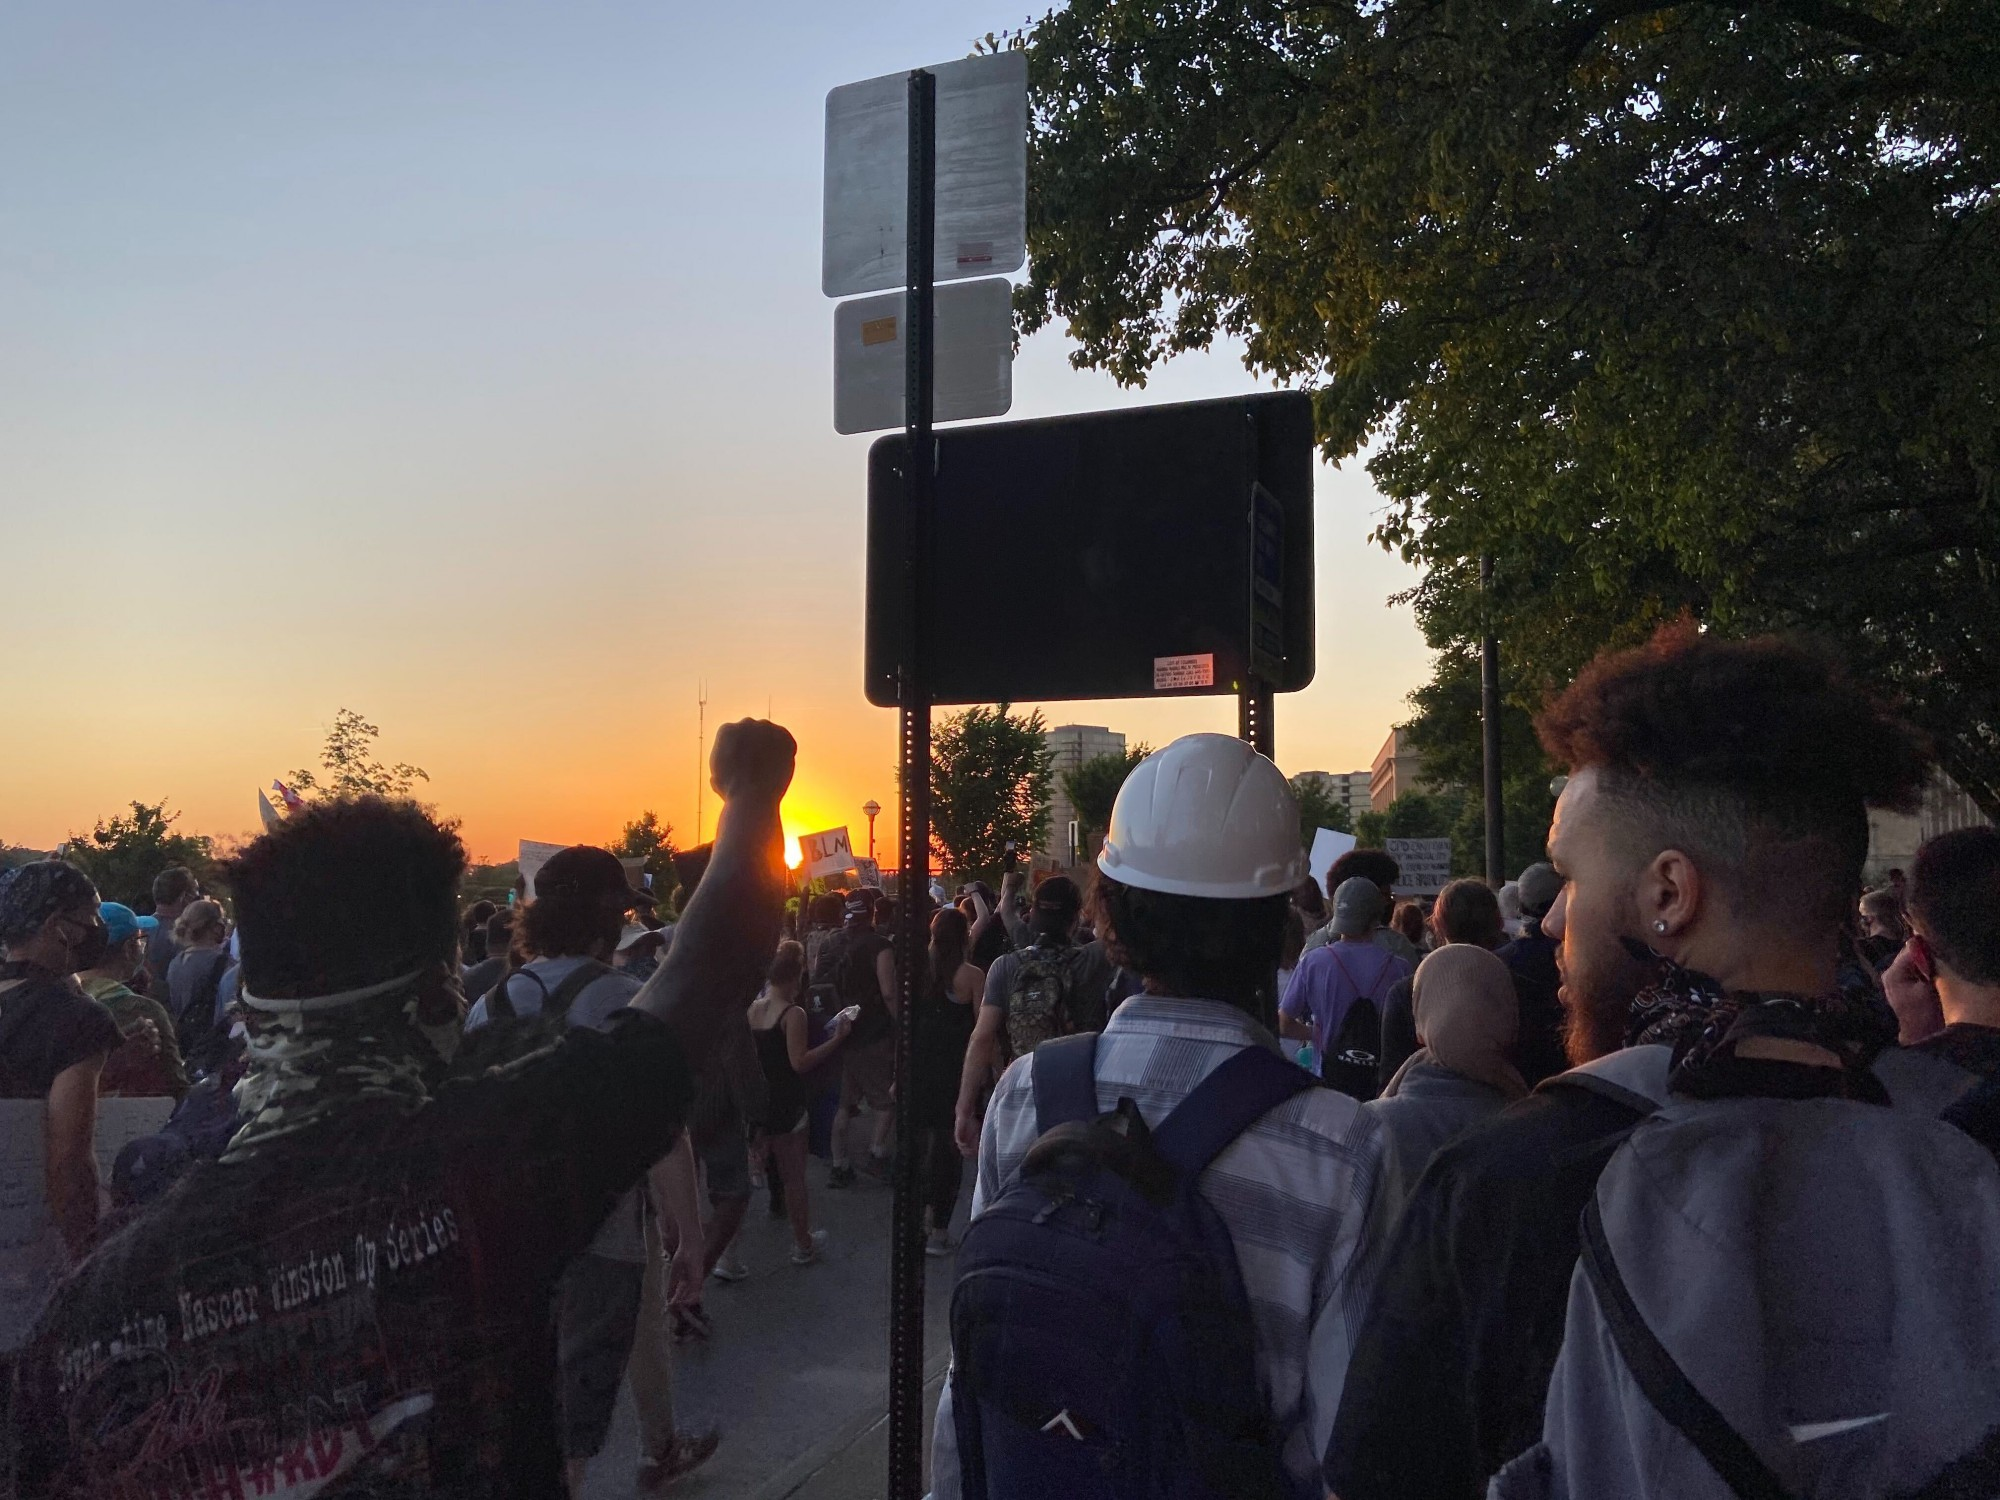 People continue to protest as the sun goes down.